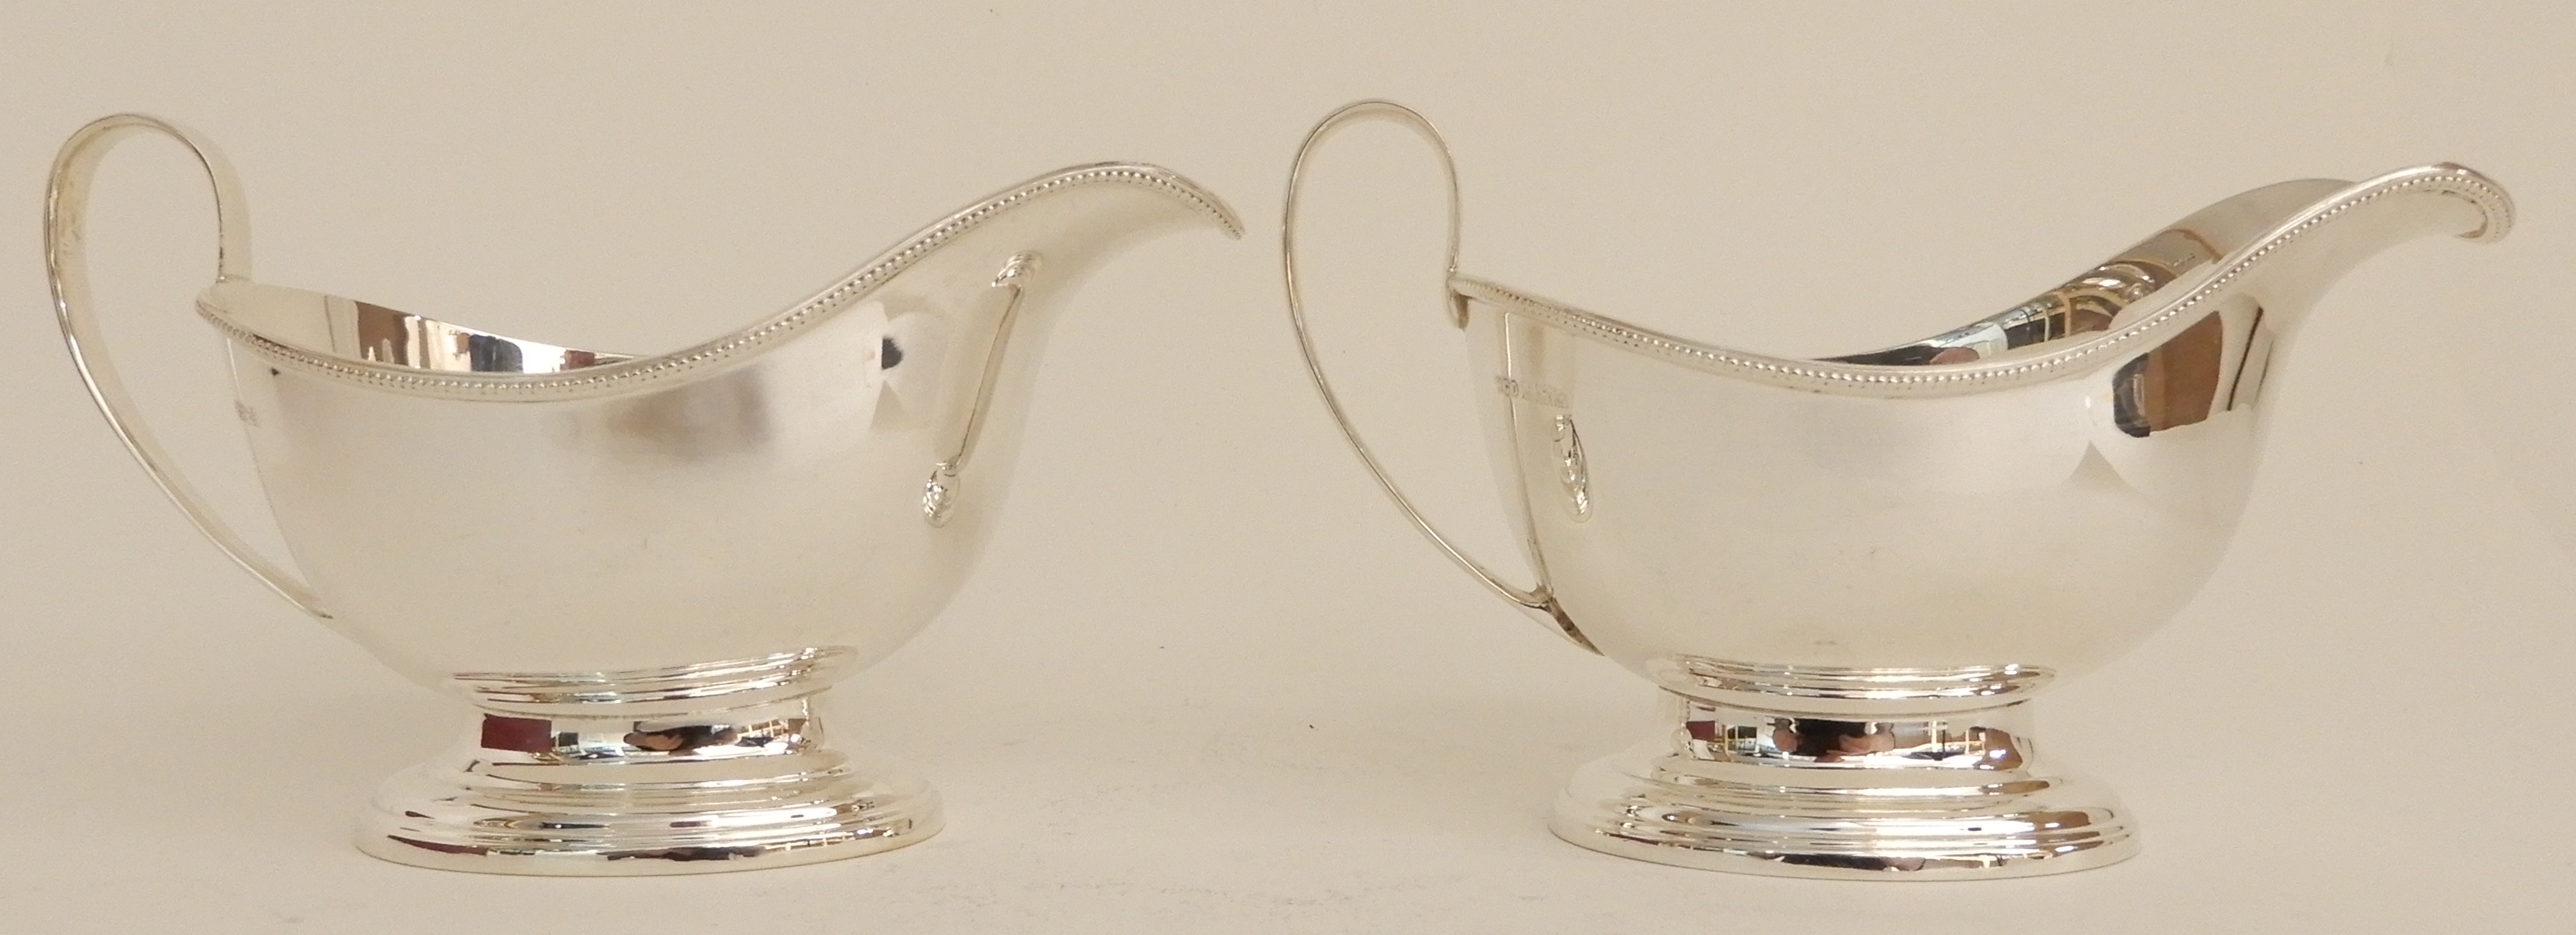 Lot 166 - A CASED PAIR OF SILVER SAUCEBOATS by Henry Clifford Davis, Birmingham 1963, of classic plain shape